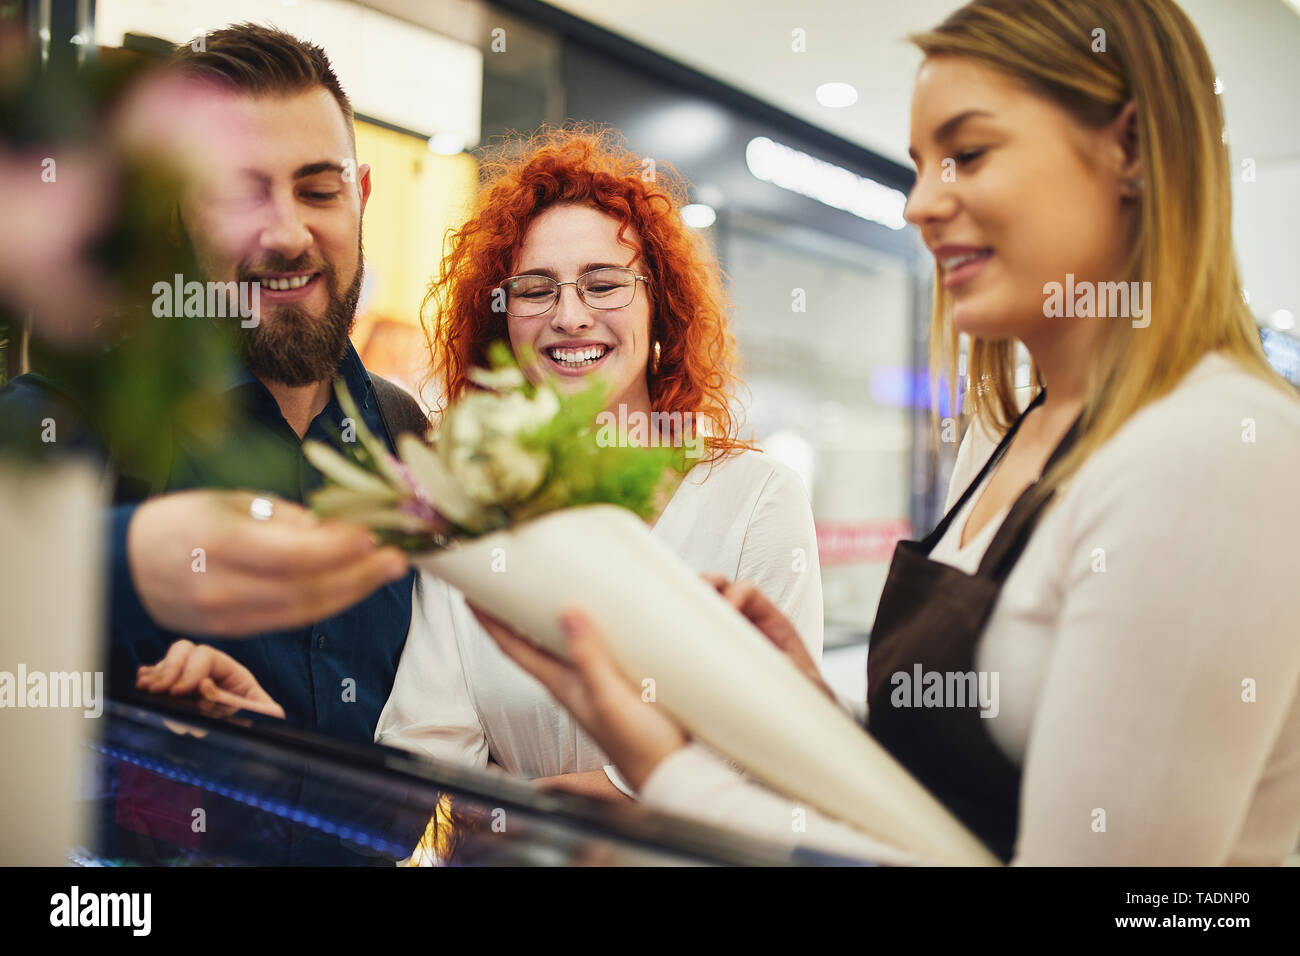 Florist wrapping flowers for couple in flower shop - Stock Image